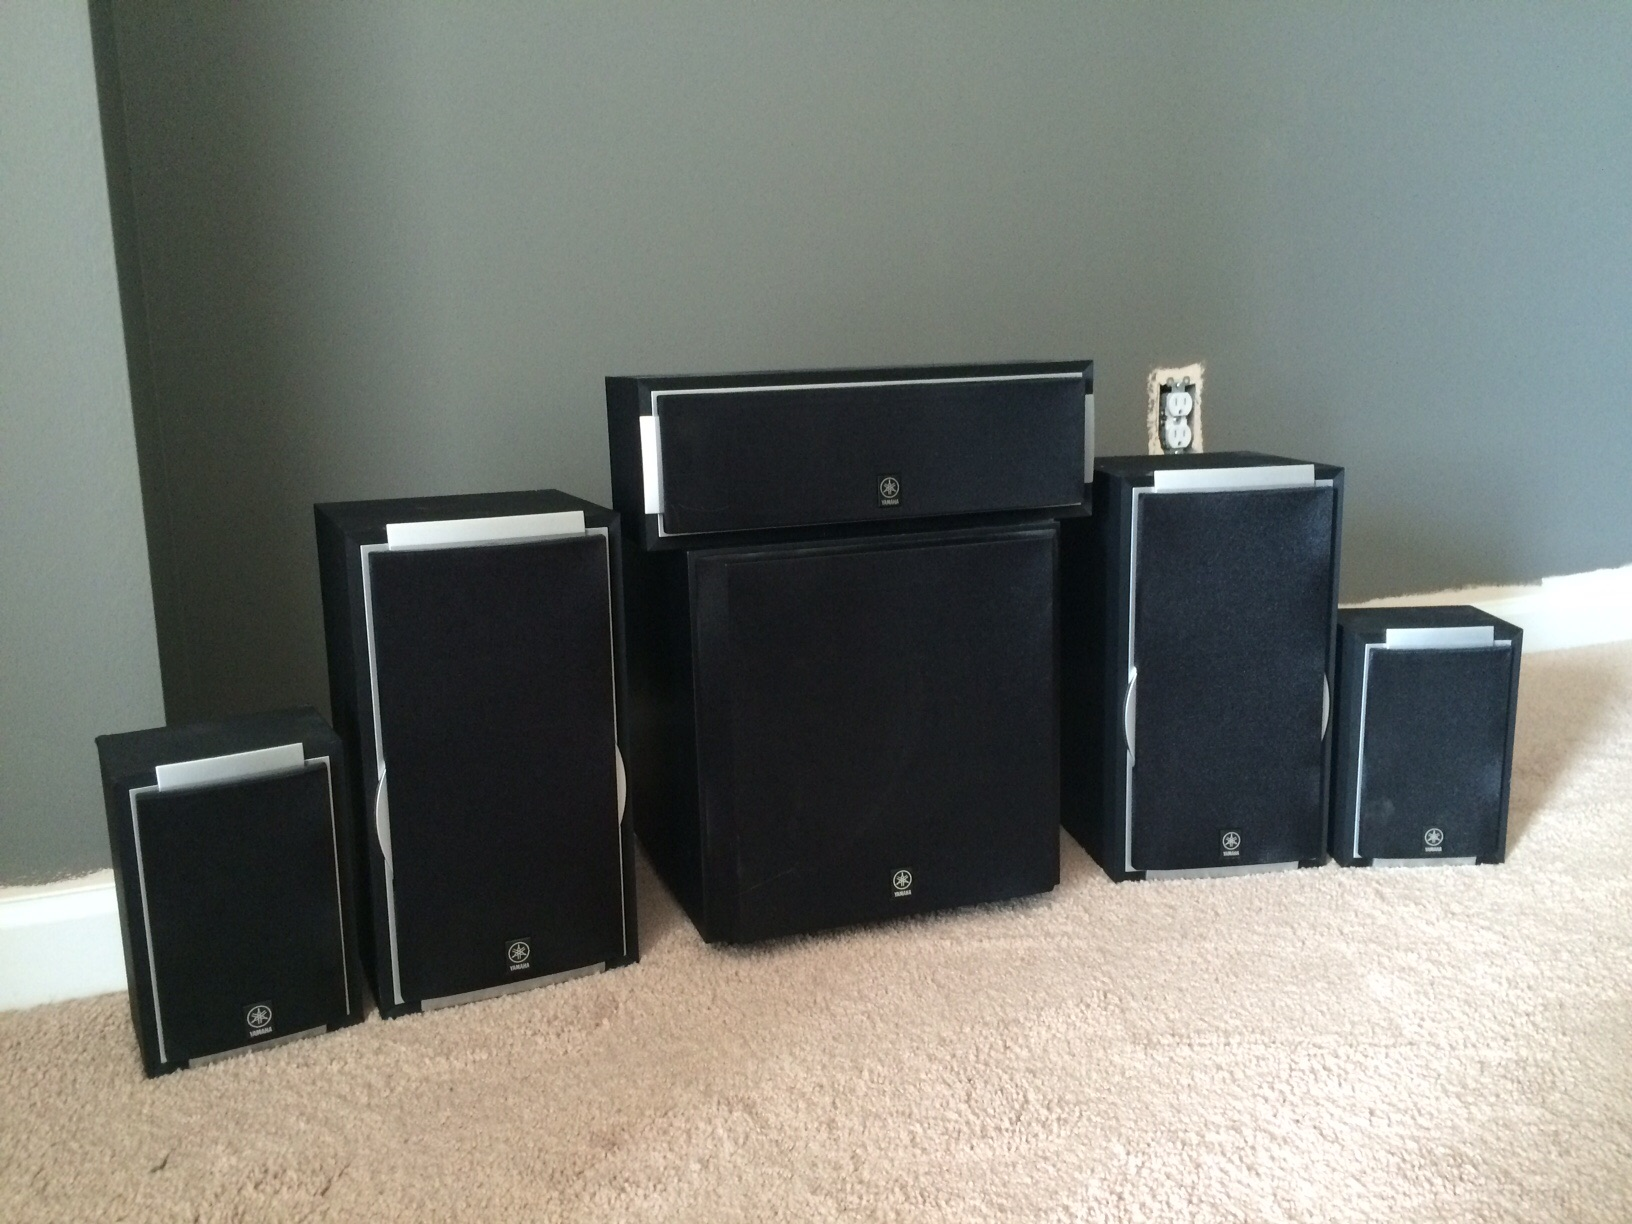 how to connect subwoofer to receiver